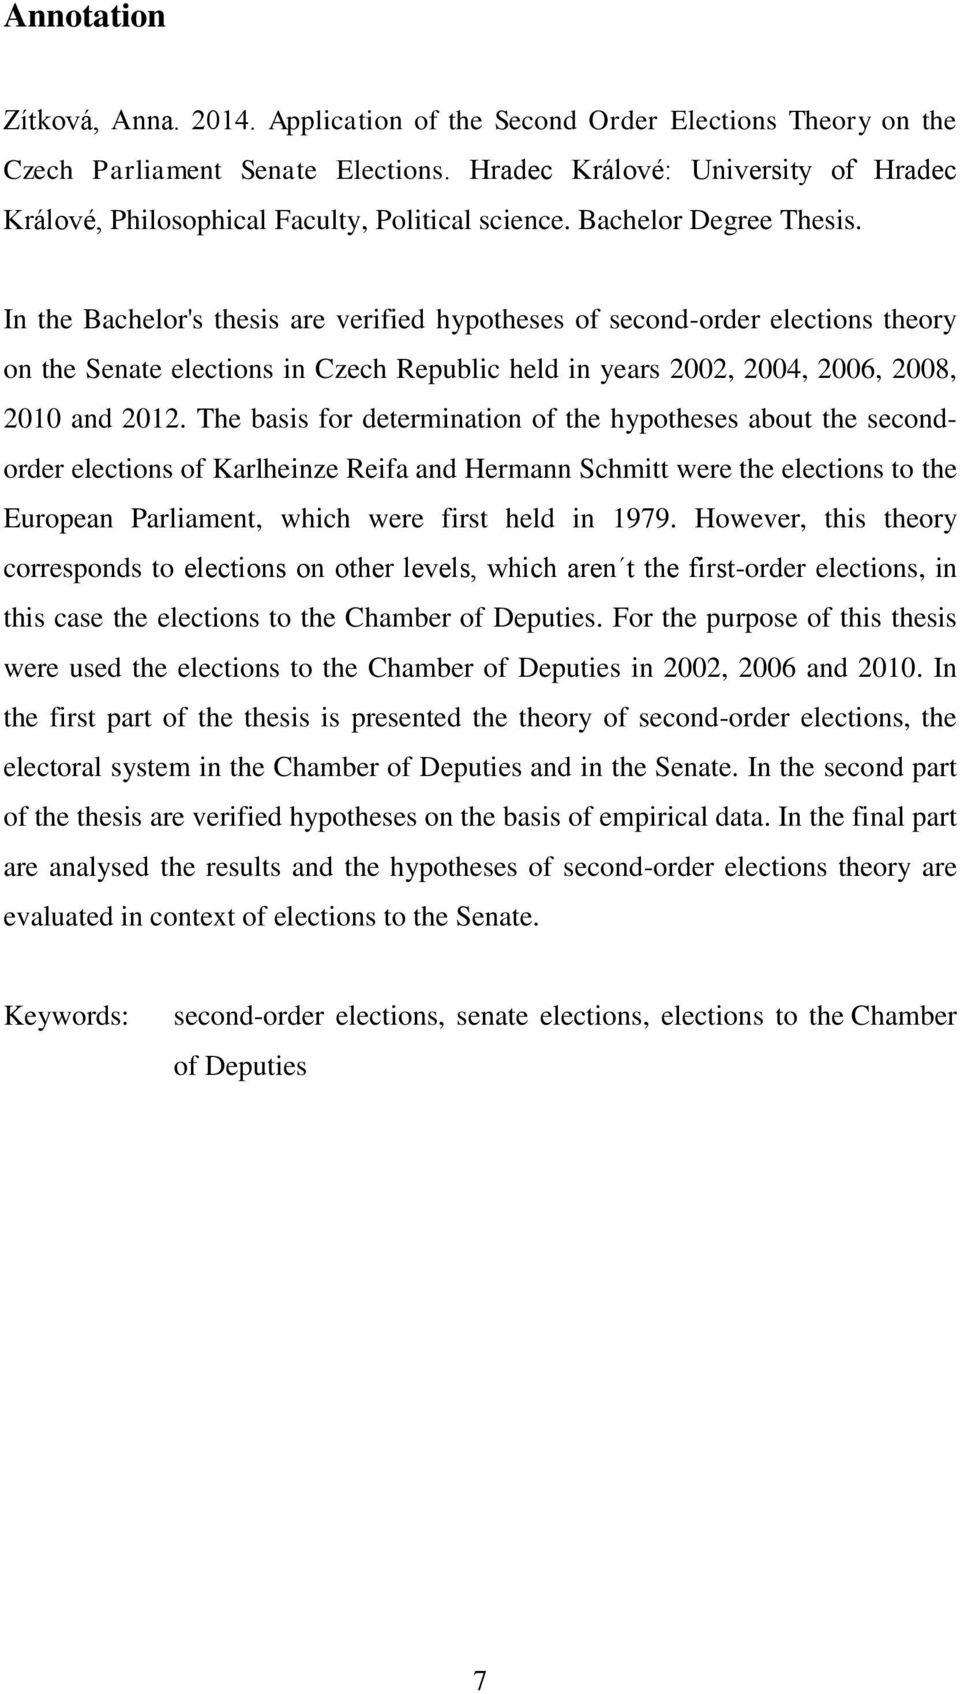 In the Bachelor's thesis are verified hypotheses of second-order elections theory on the Senate elections in Czech Republic held in years 2002, 2004, 2006, 2008, 2010 and 2012.